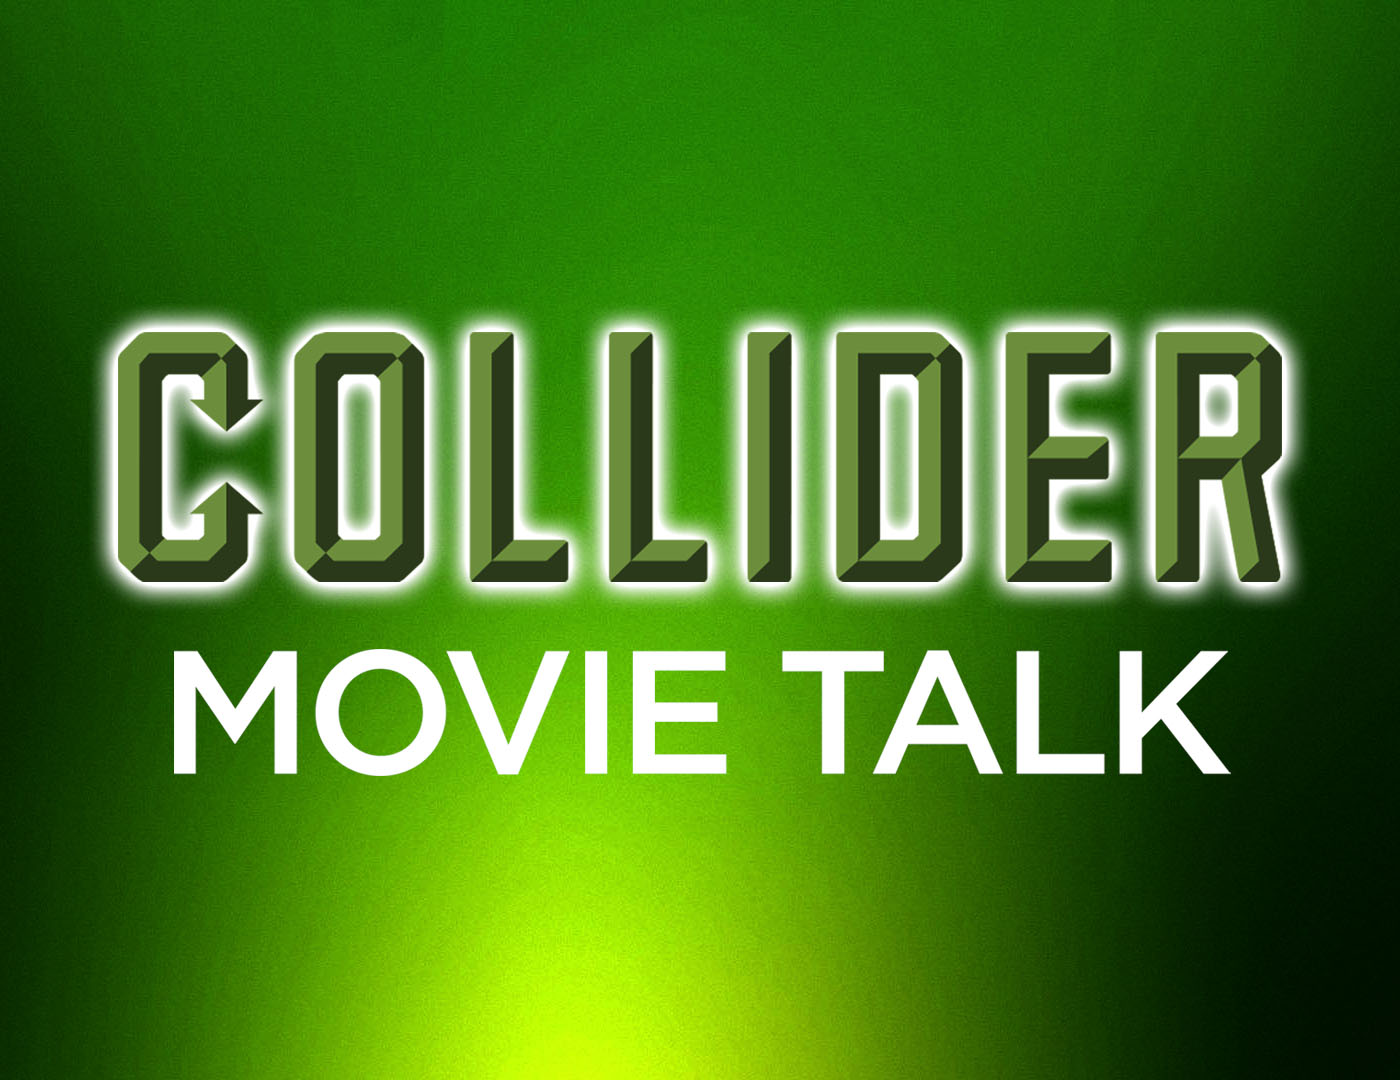 Collider Movie Talk - Star Wars Breaking Records, How Much Will It Make?